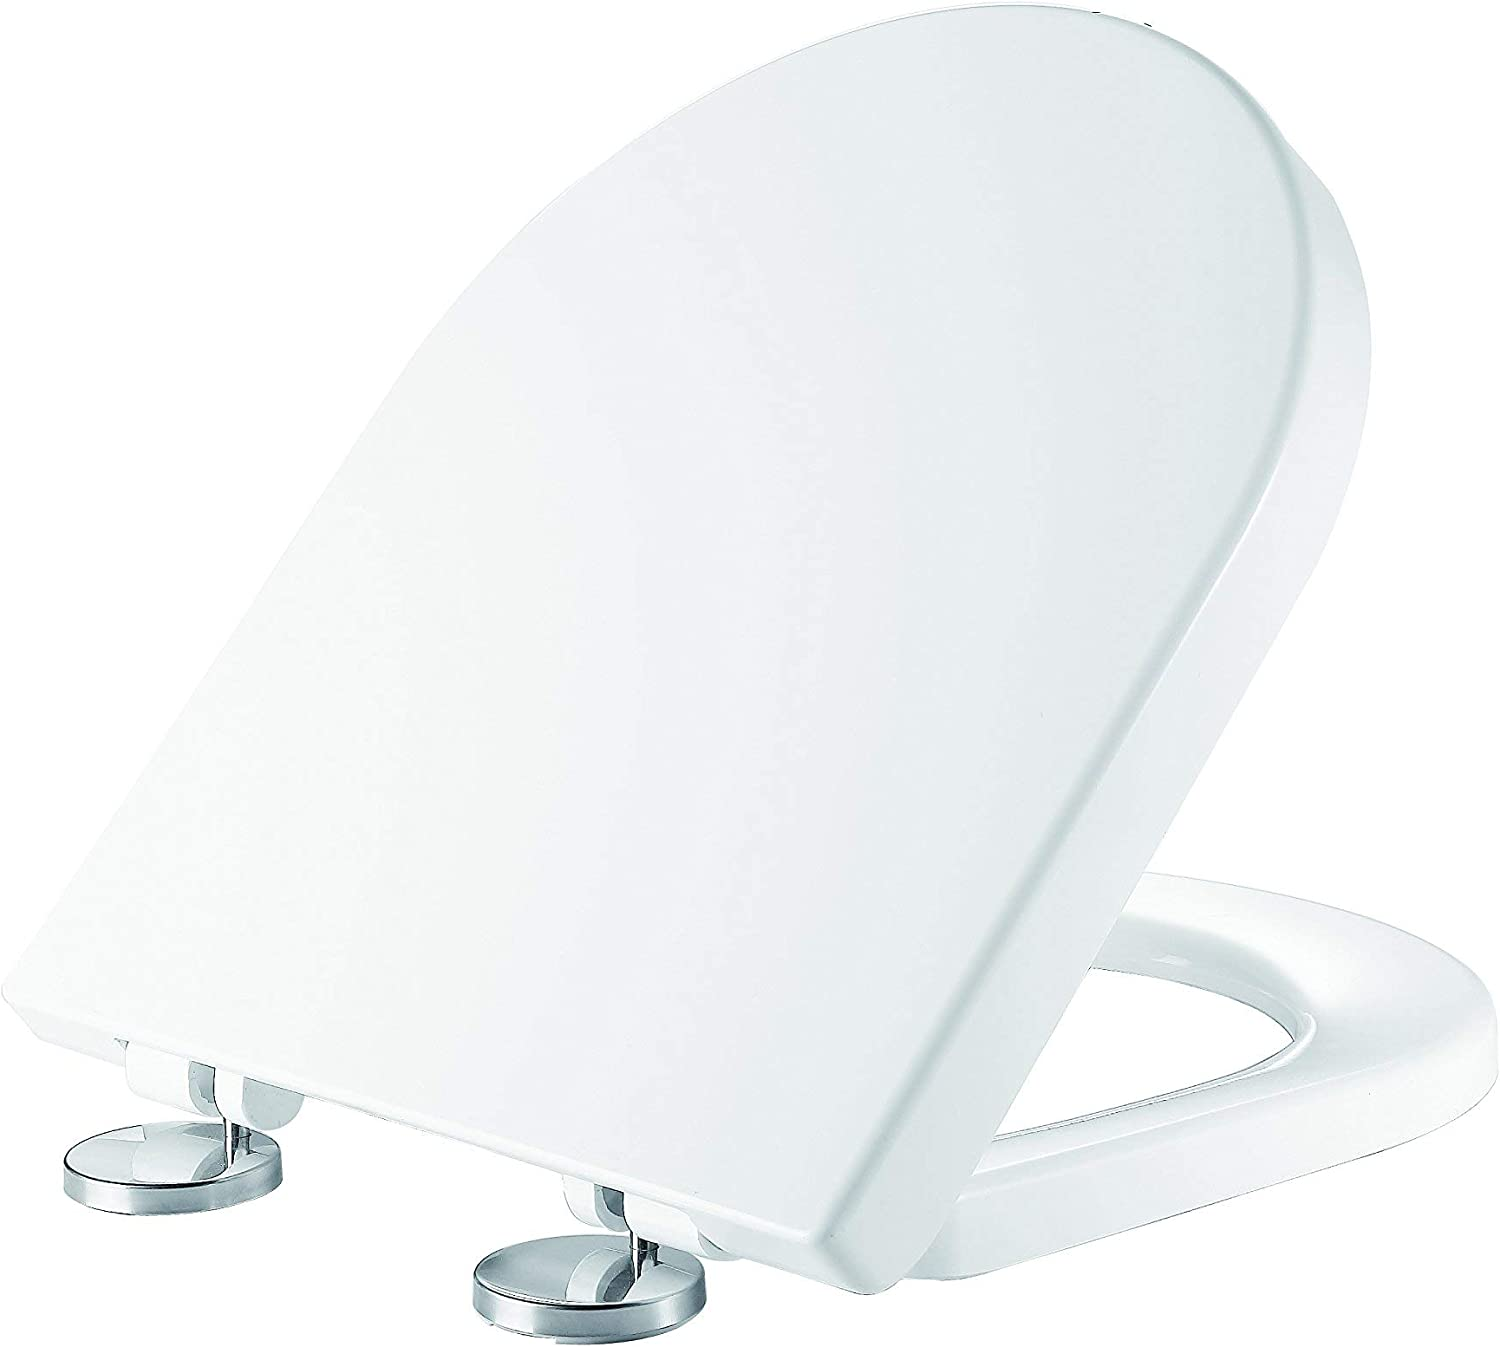 Ultra White D Shaped Toilet Seat Anctibacterial Duroplast Quick Release Toilet Seat Soft Close Toilet Seat - D Shape Toilet Seats Soft Close Heavy Duty Toilet Seat Top Fixing Soft-Close Loo Seat UF811